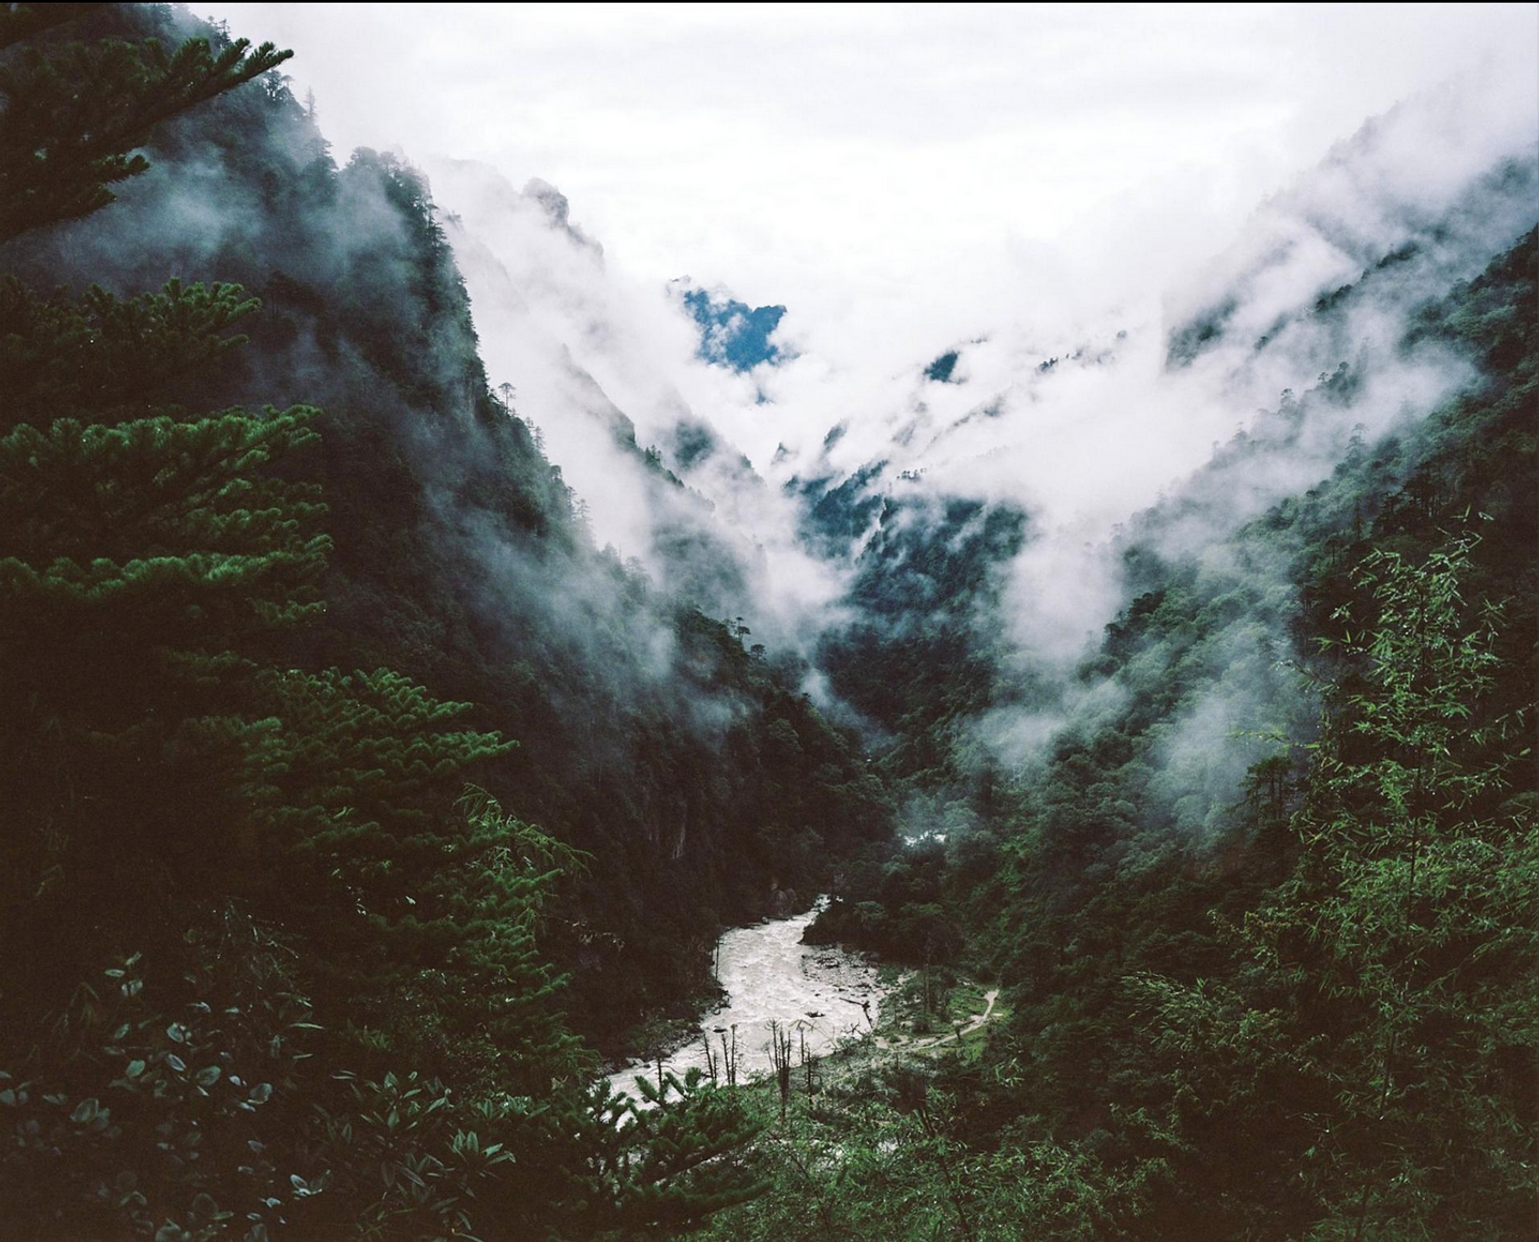 Bhutan is one of the world's remaining biodiversity hotspots. Approximately 72 percent of Bhutan is covered by forests. The country's government has a mandate that 60 percent will be protected for all time. Despite their environmental commitment, Bhutan's glaciers are retreating and melting, causing dangerous floods and resource scarcity.